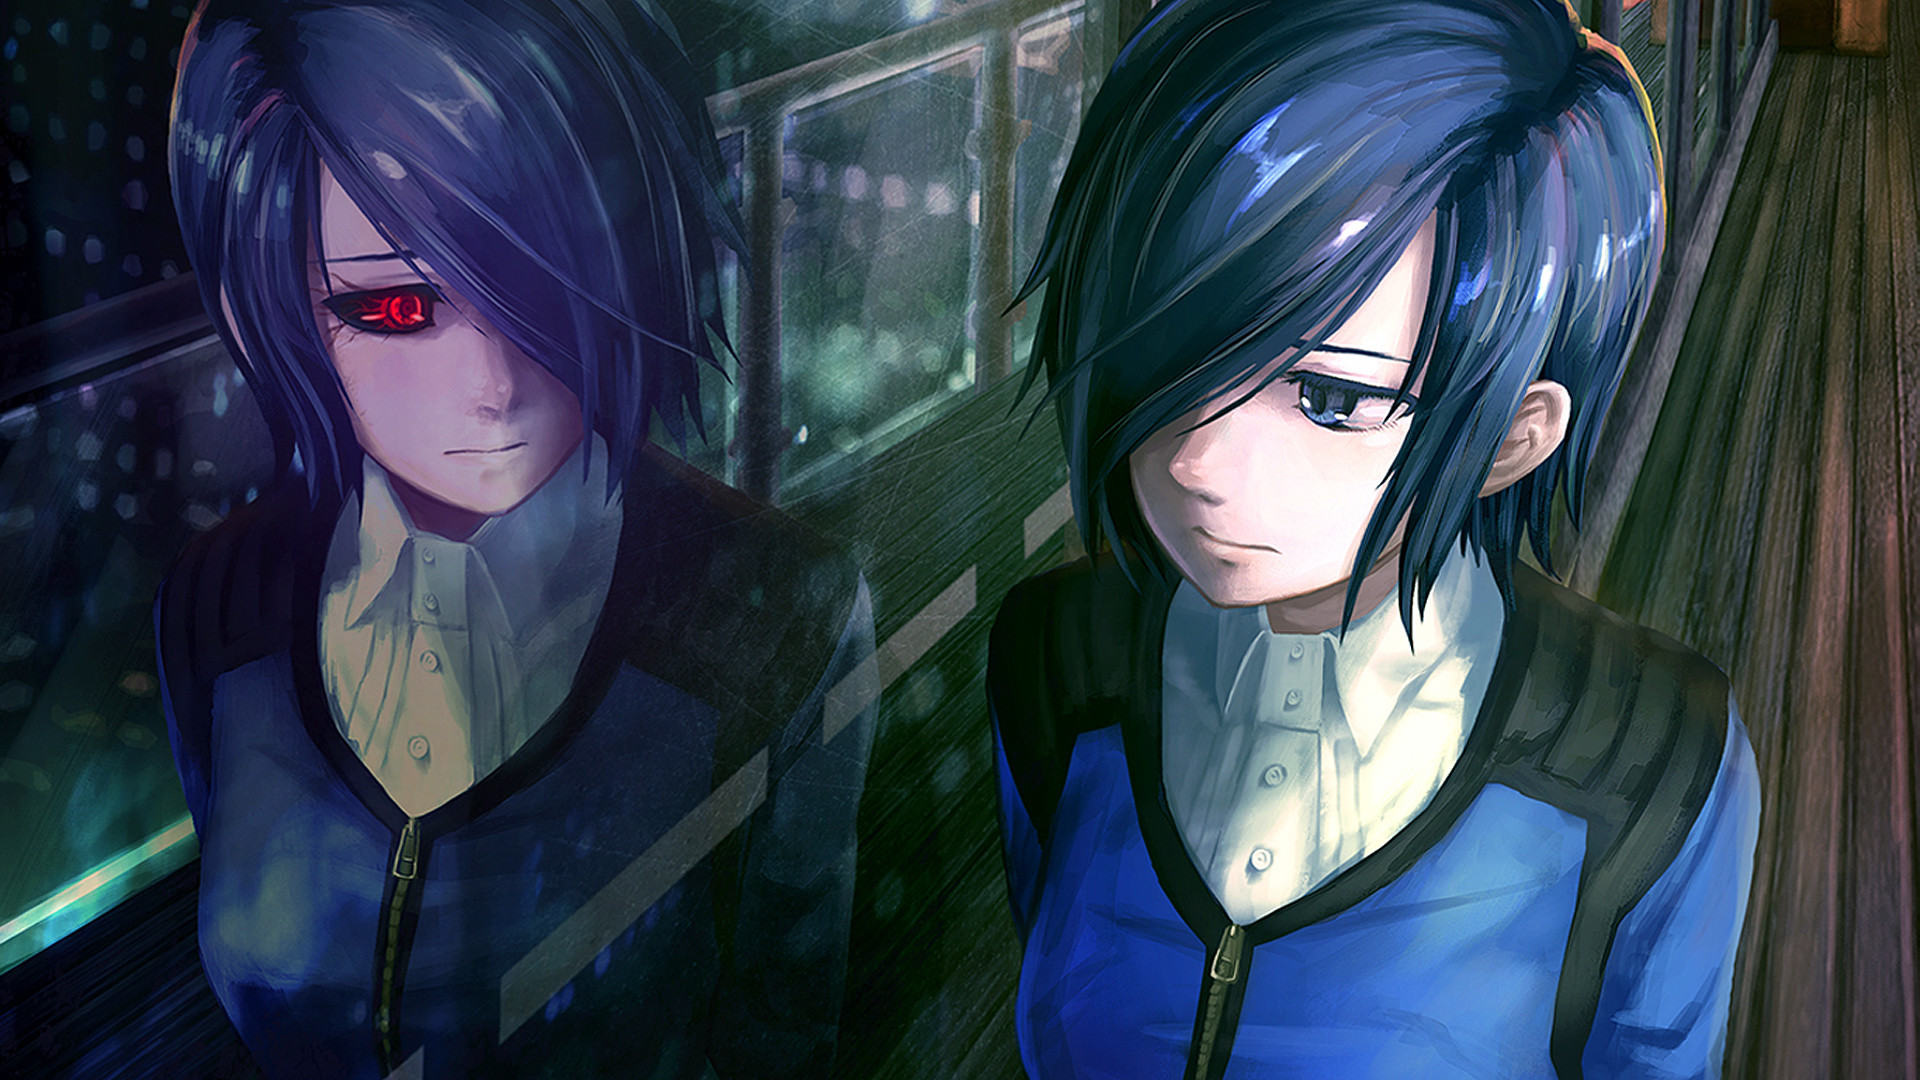 1920x1080 Preview wallpaper tokyo ghoul, kirishima touka, girl, anime, reflection